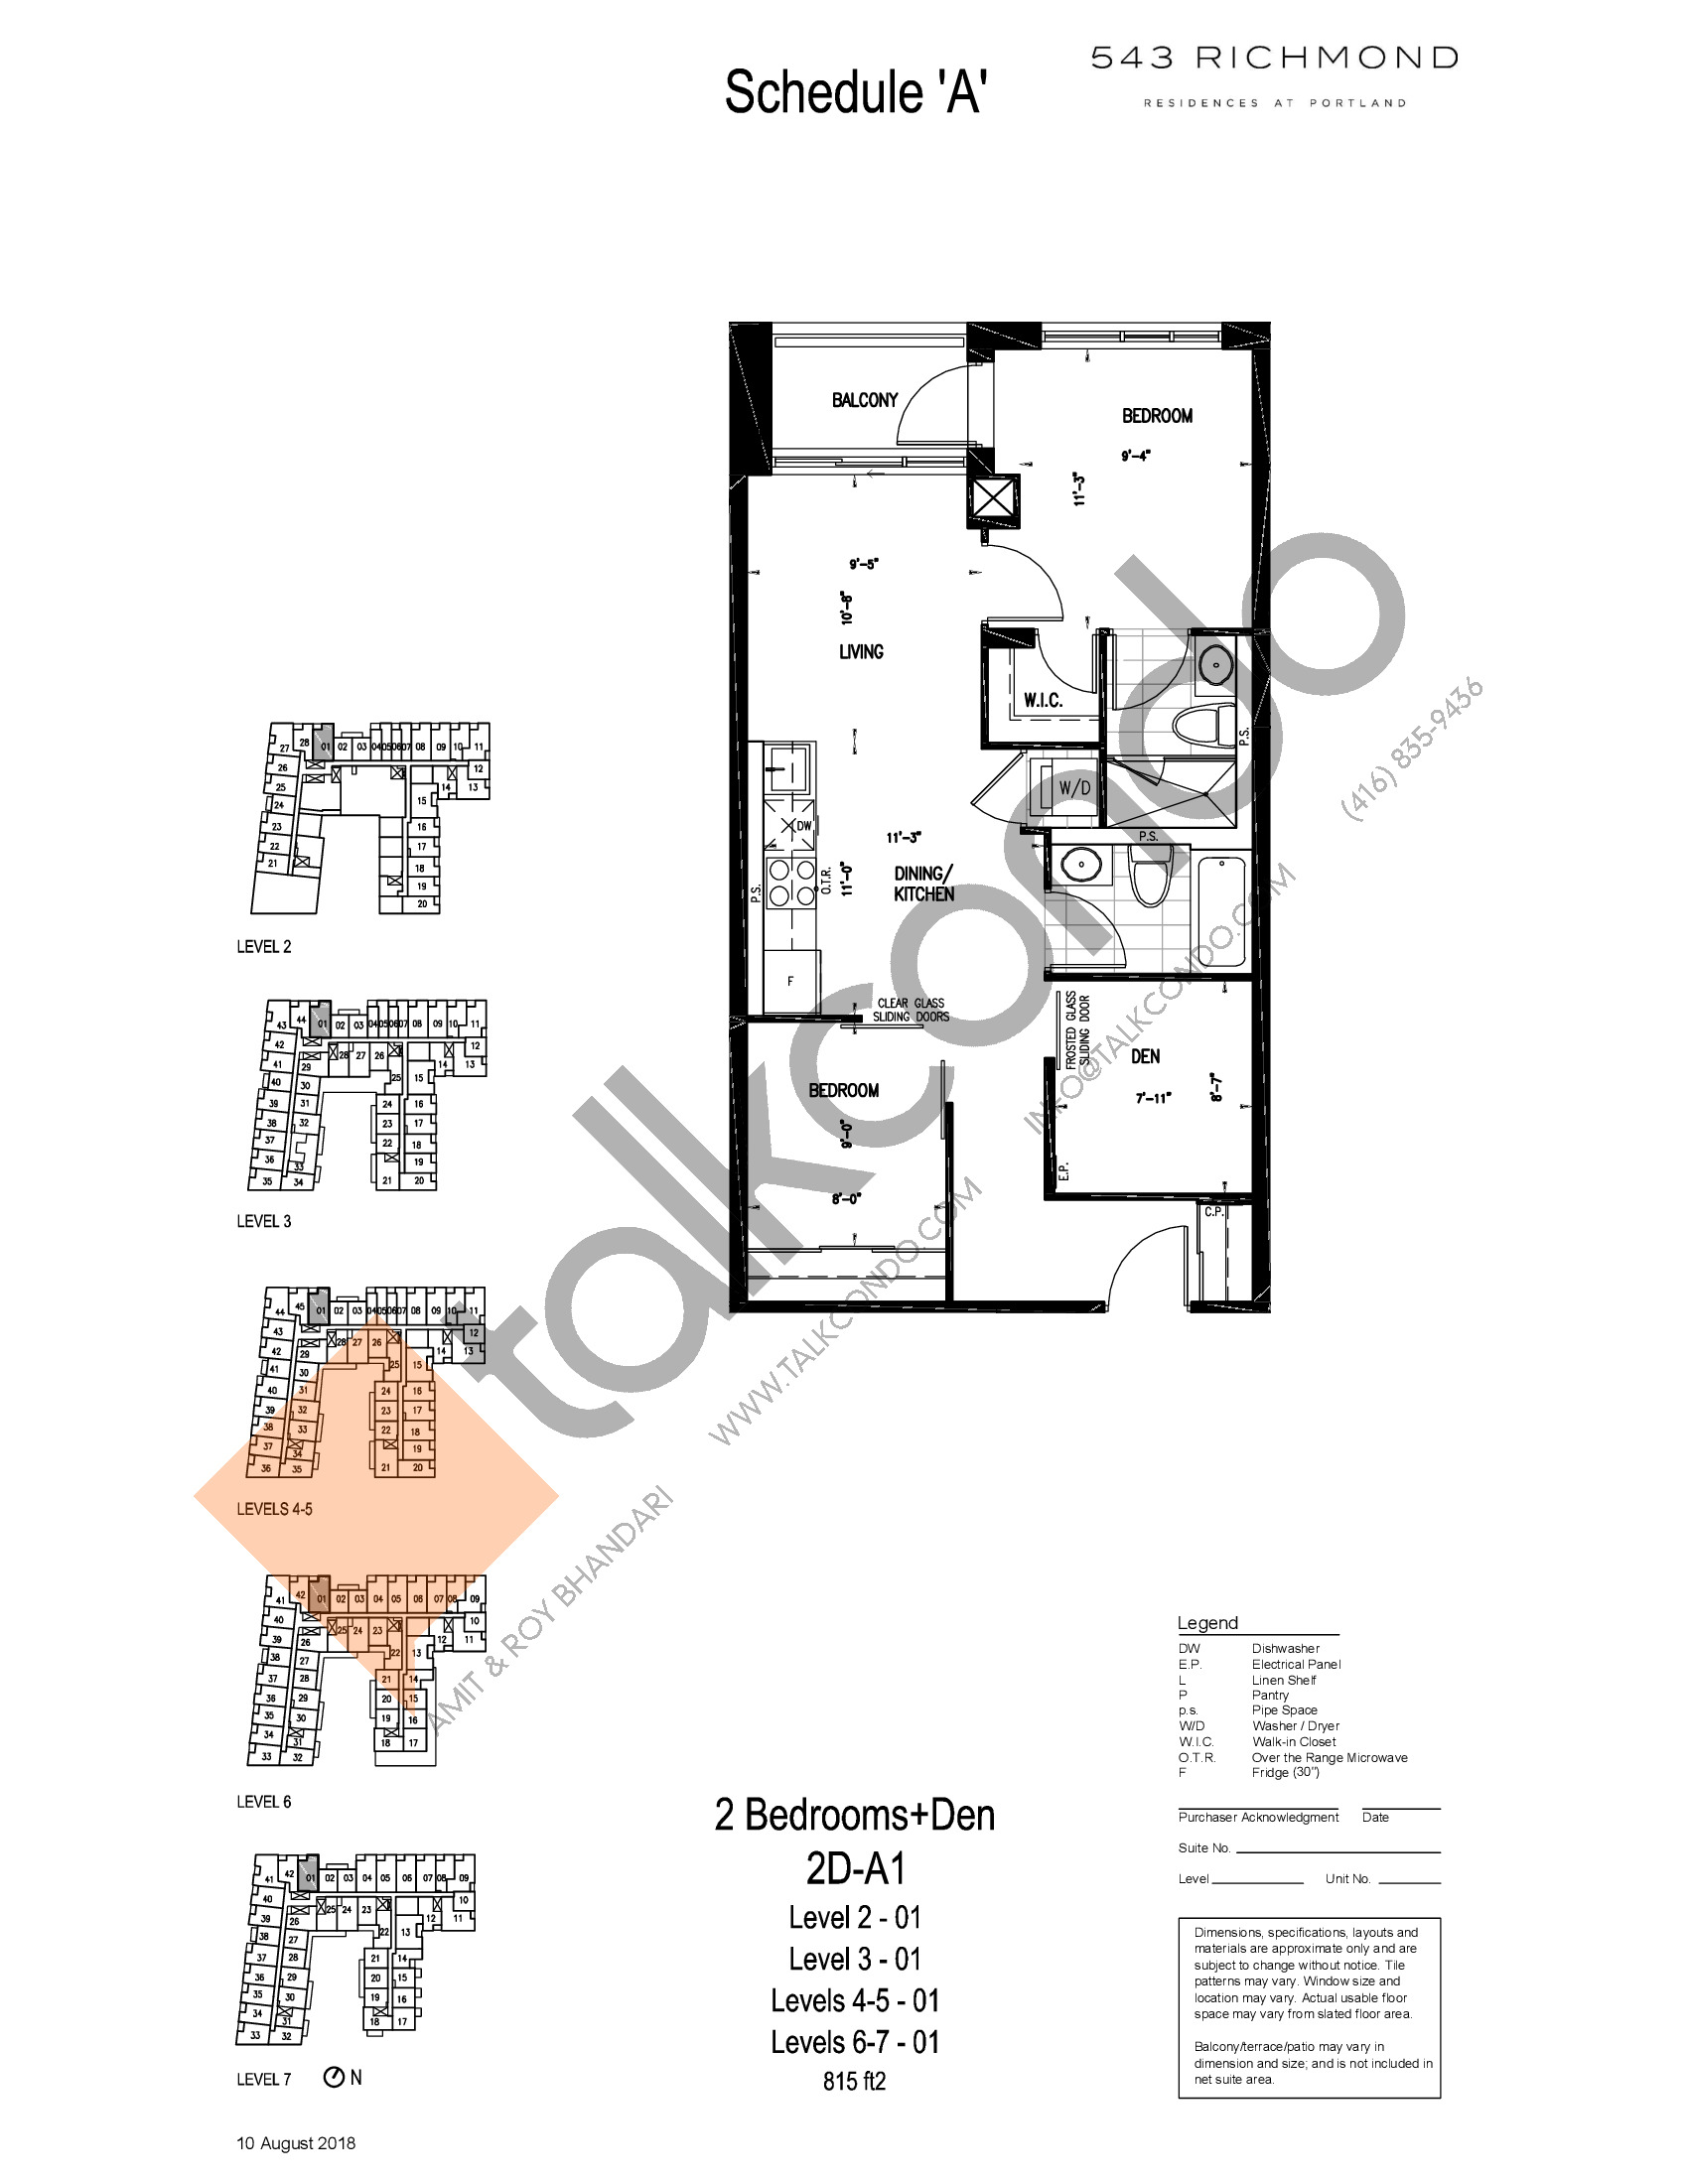 2D-A1 Floor Plan at 543 Richmond St Condos - 815 sq.ft